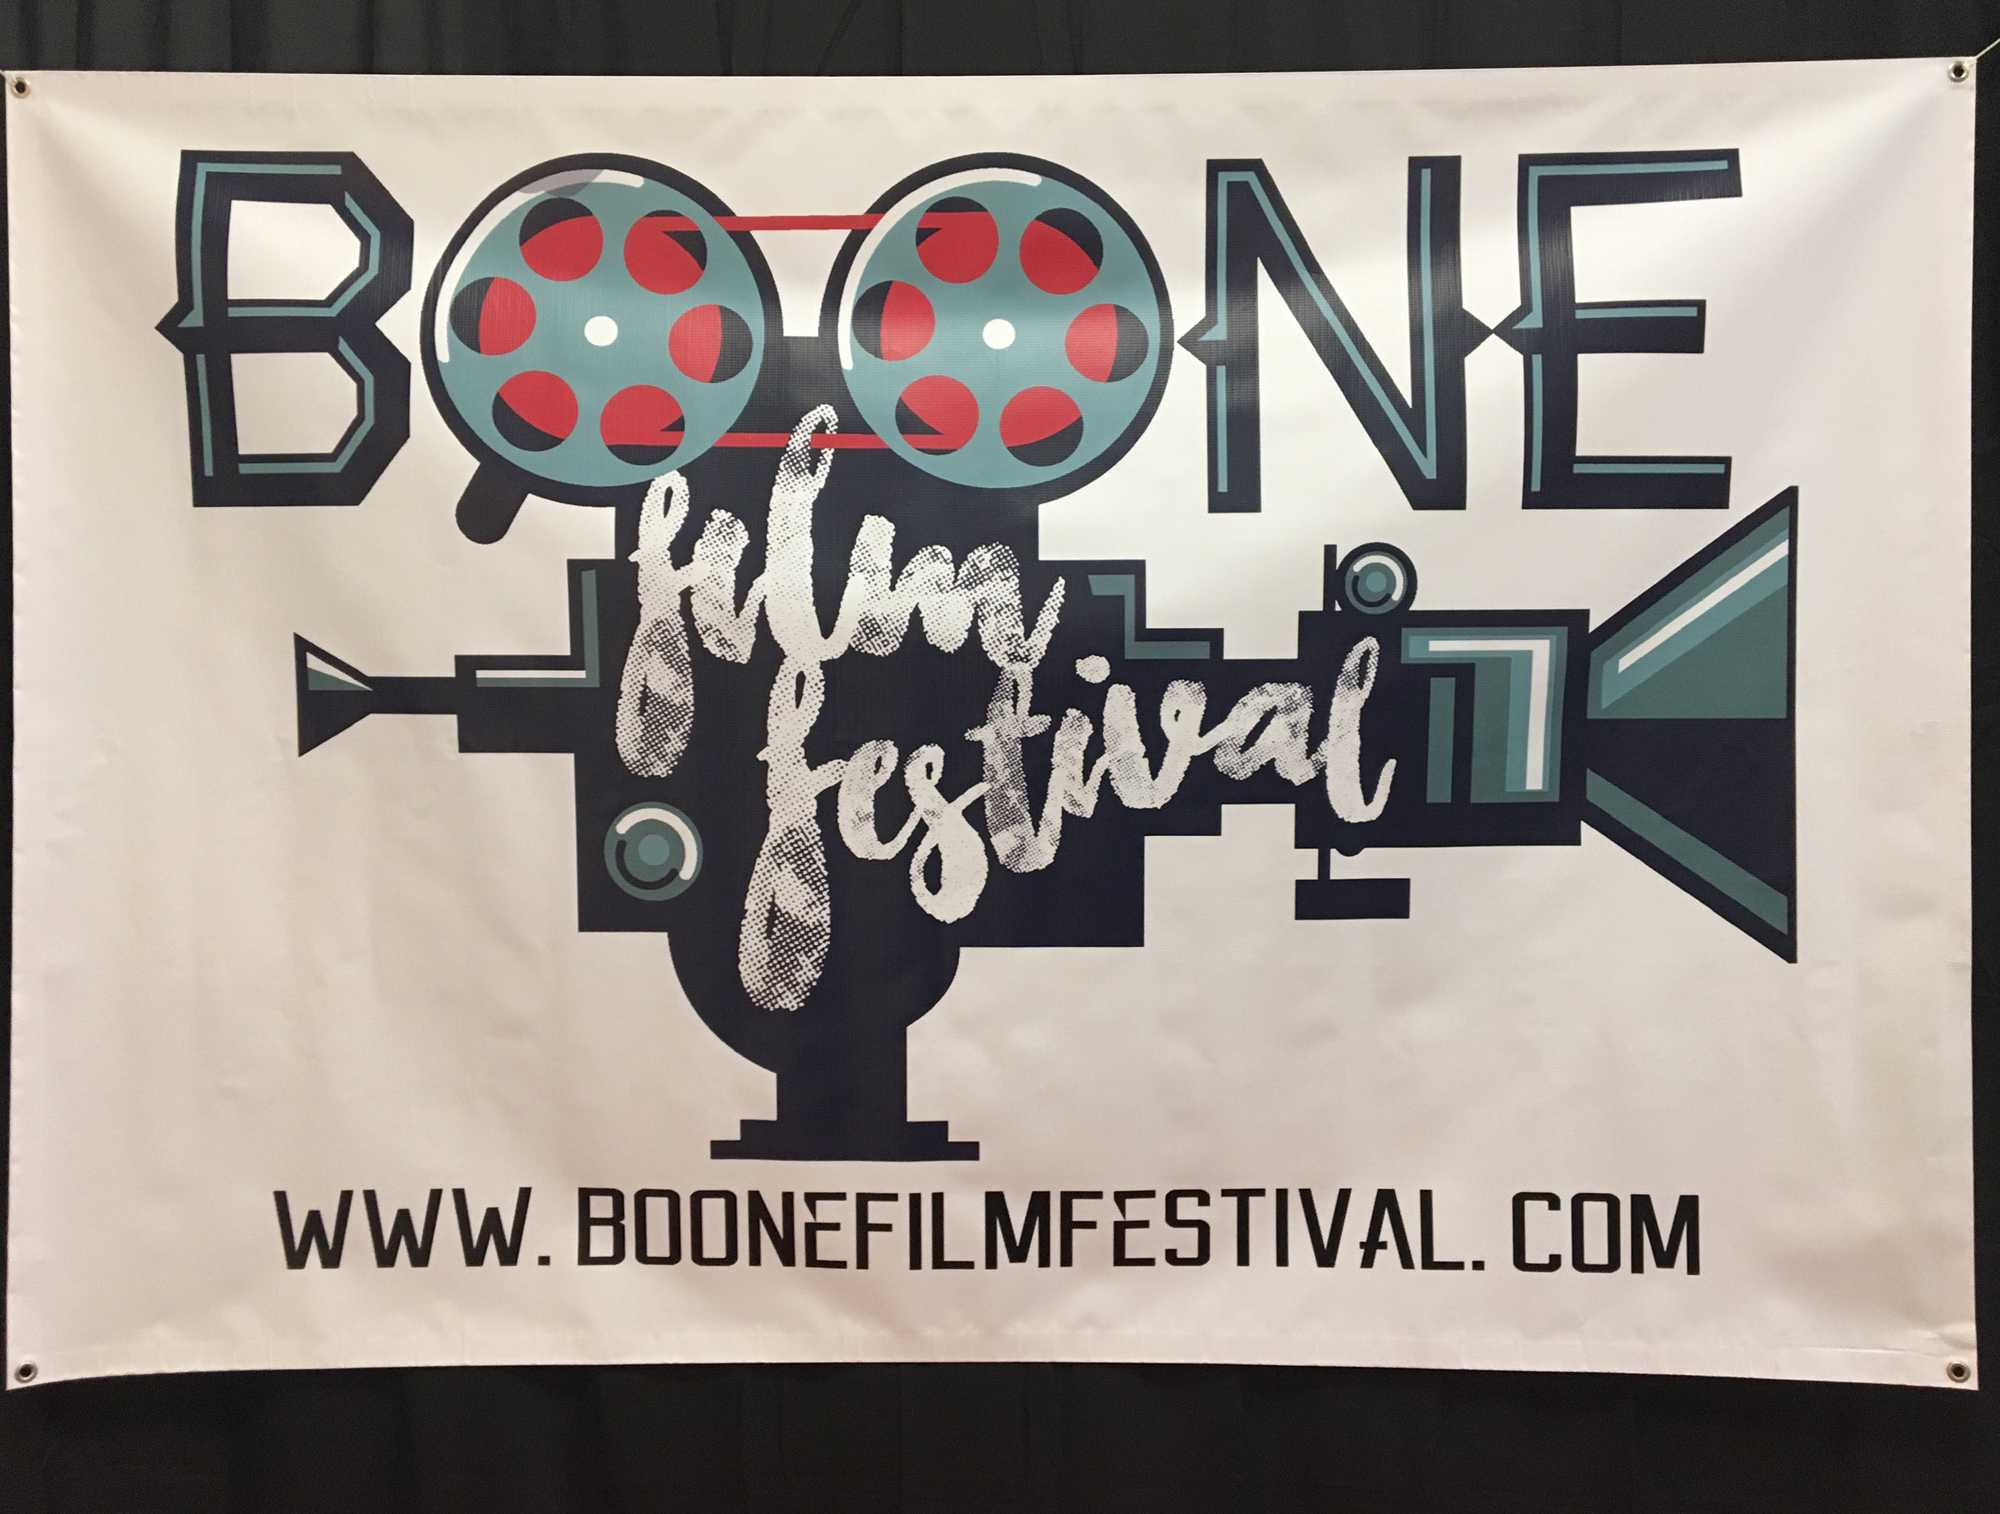 Third annual Boone Film Festival celebrates stories from the Appalachian Region